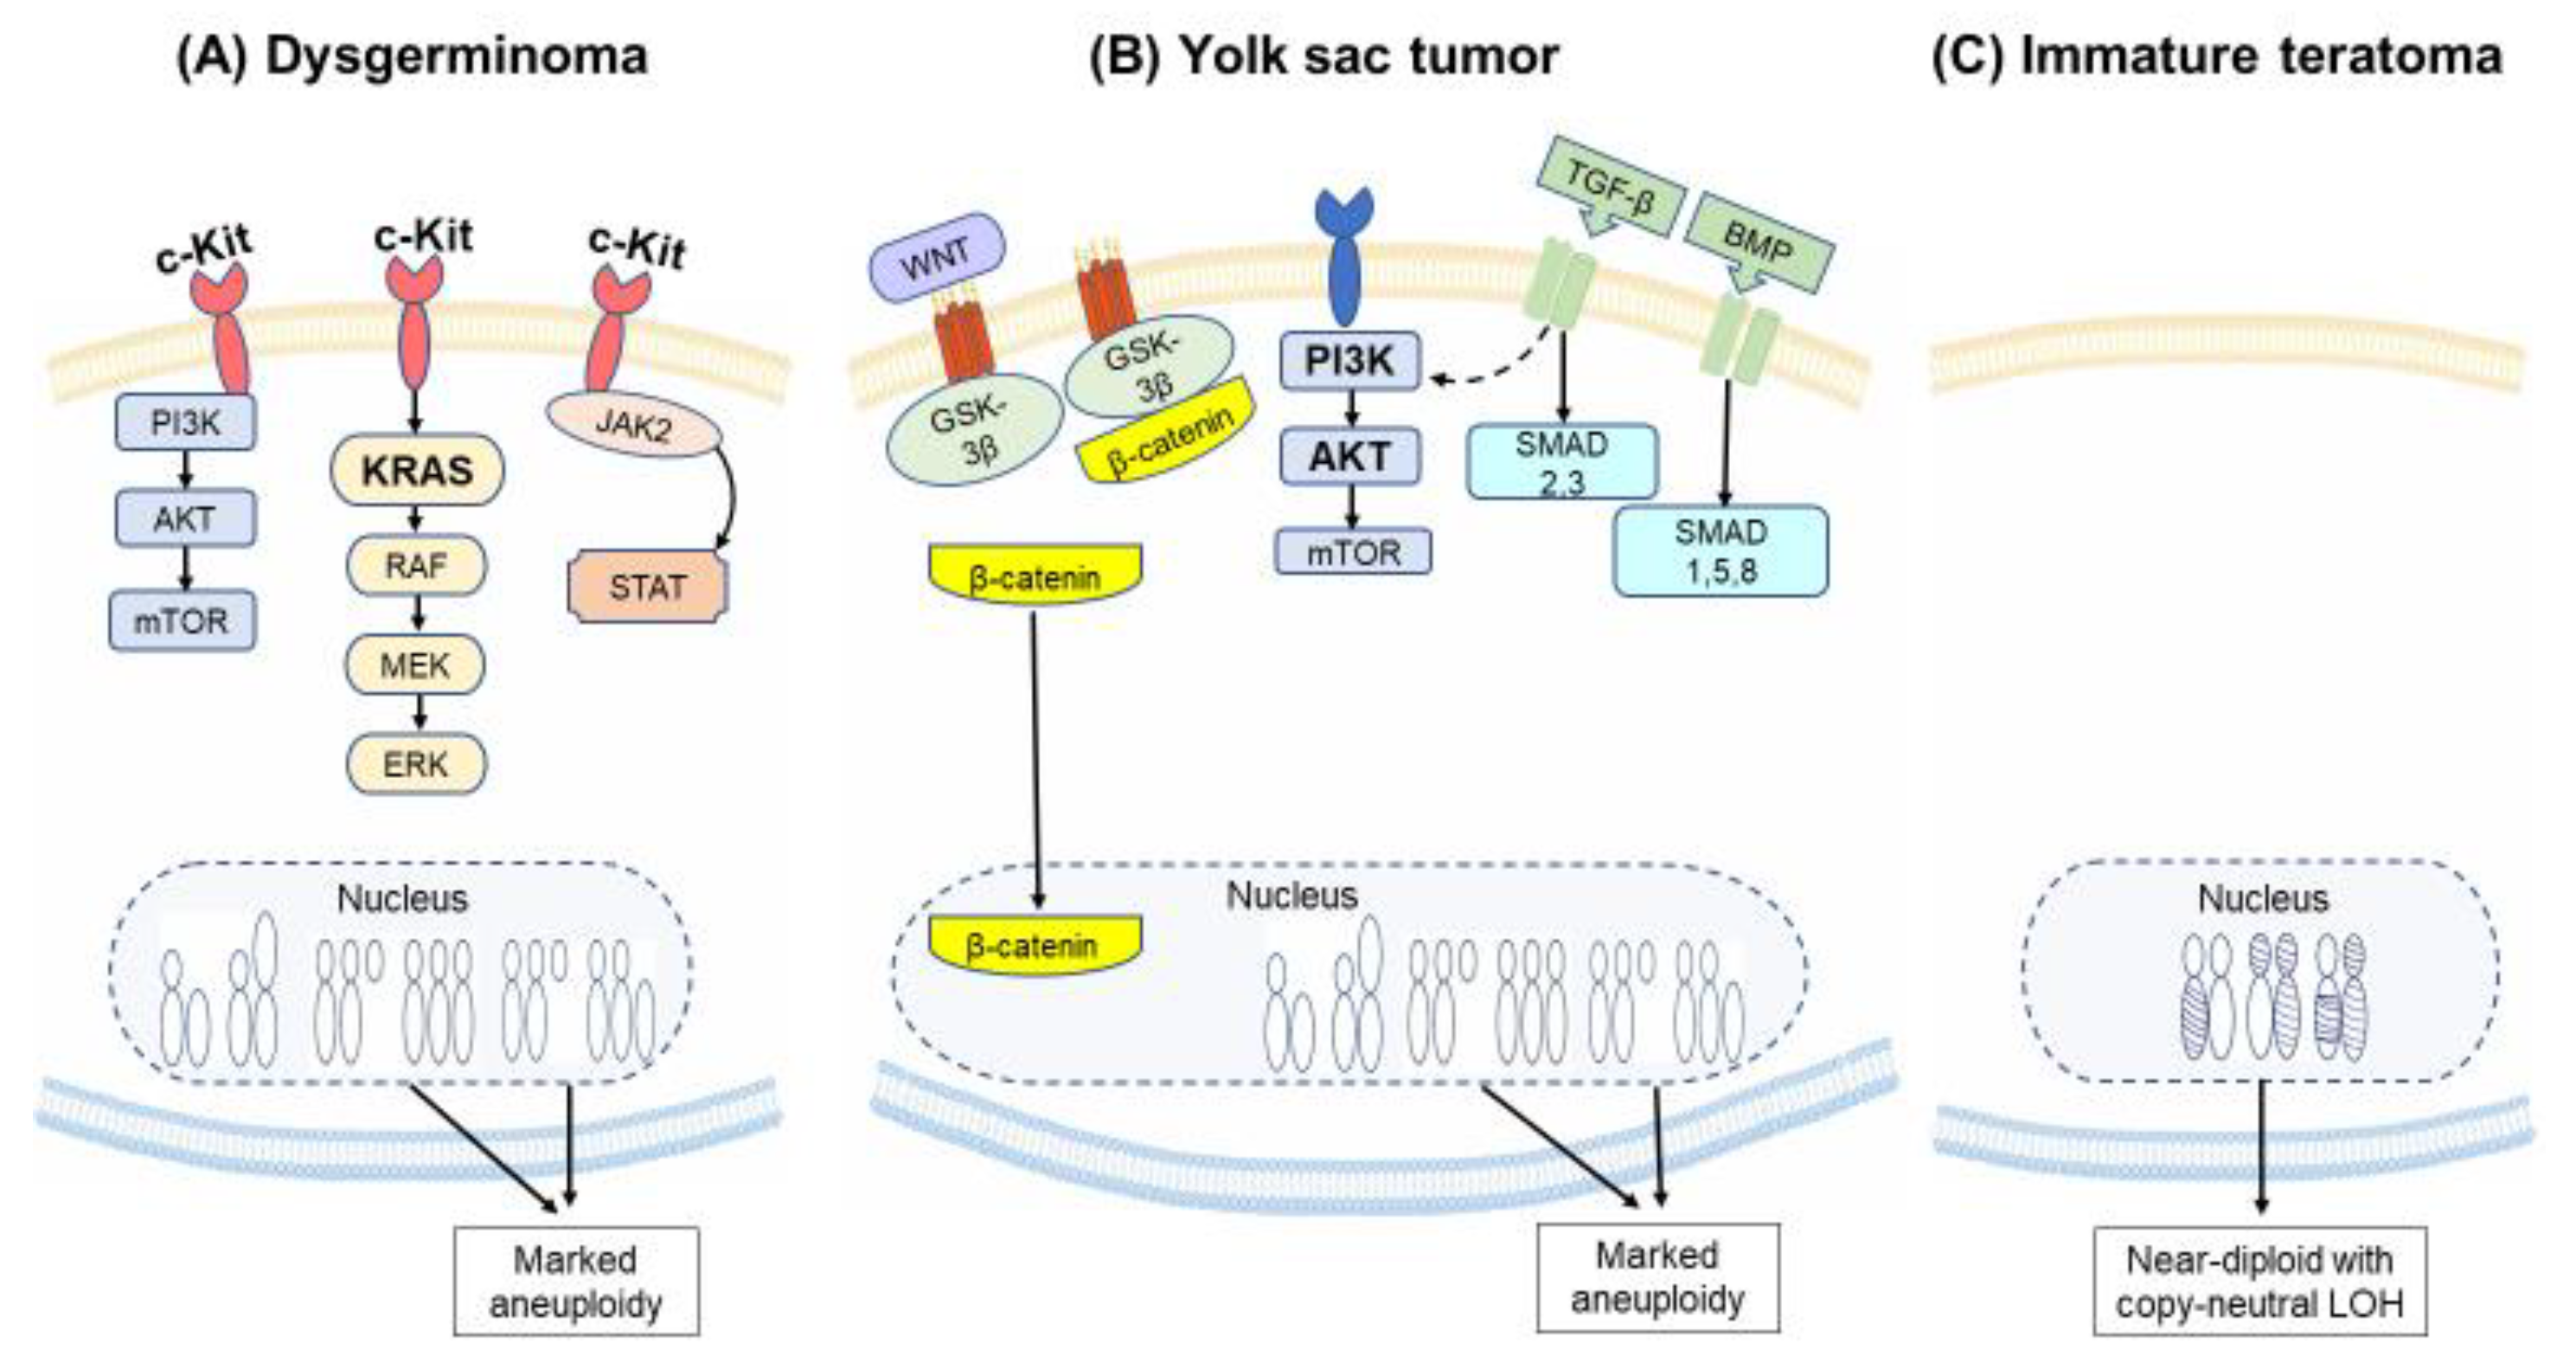 Cancers Free Full Text Molecular Pathways And Targeted Therapies For Malignant Ovarian Germ Cell Tumors And Sex Cord Stromal Tumors A Contemporary Review Html